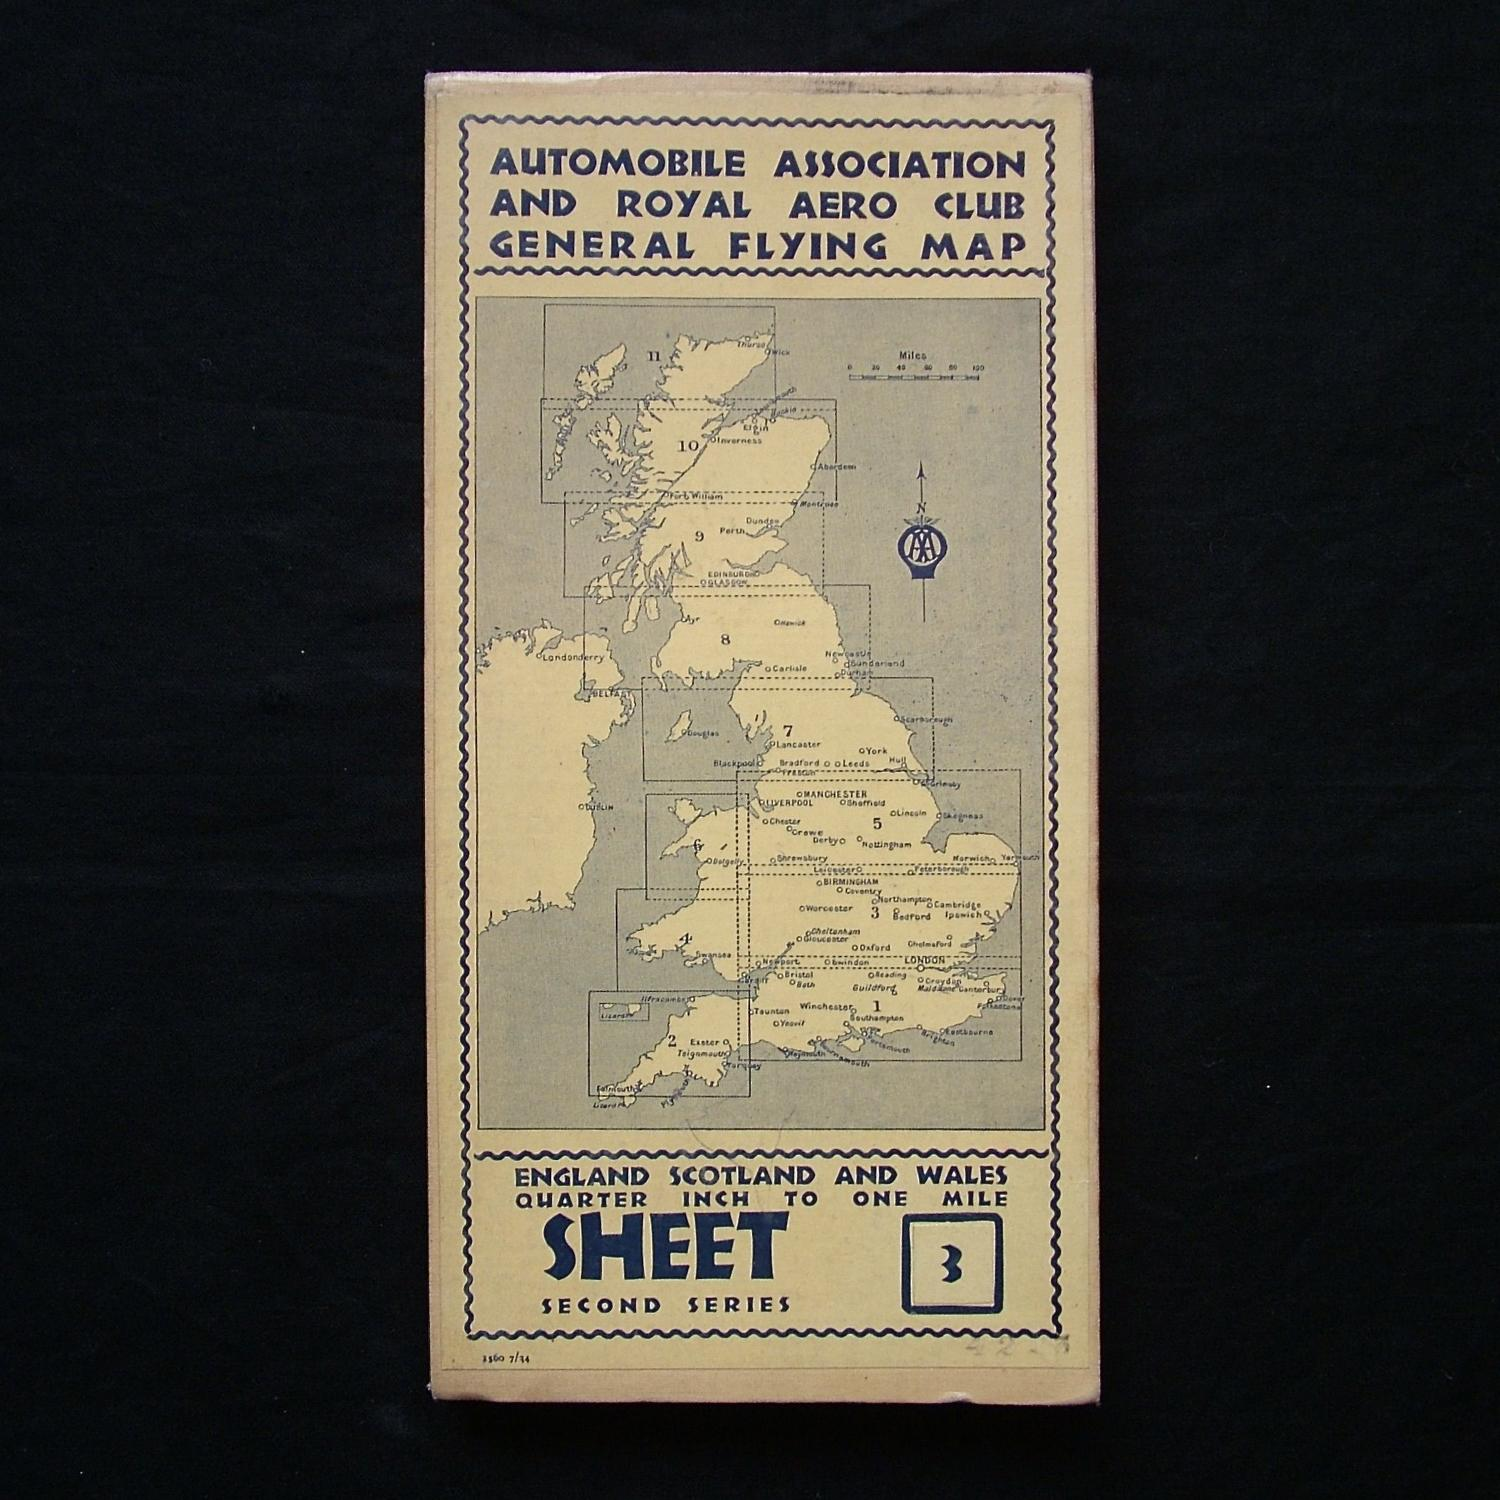 Pre WW2 AA & Royal Aero Club flying map, sheet 3